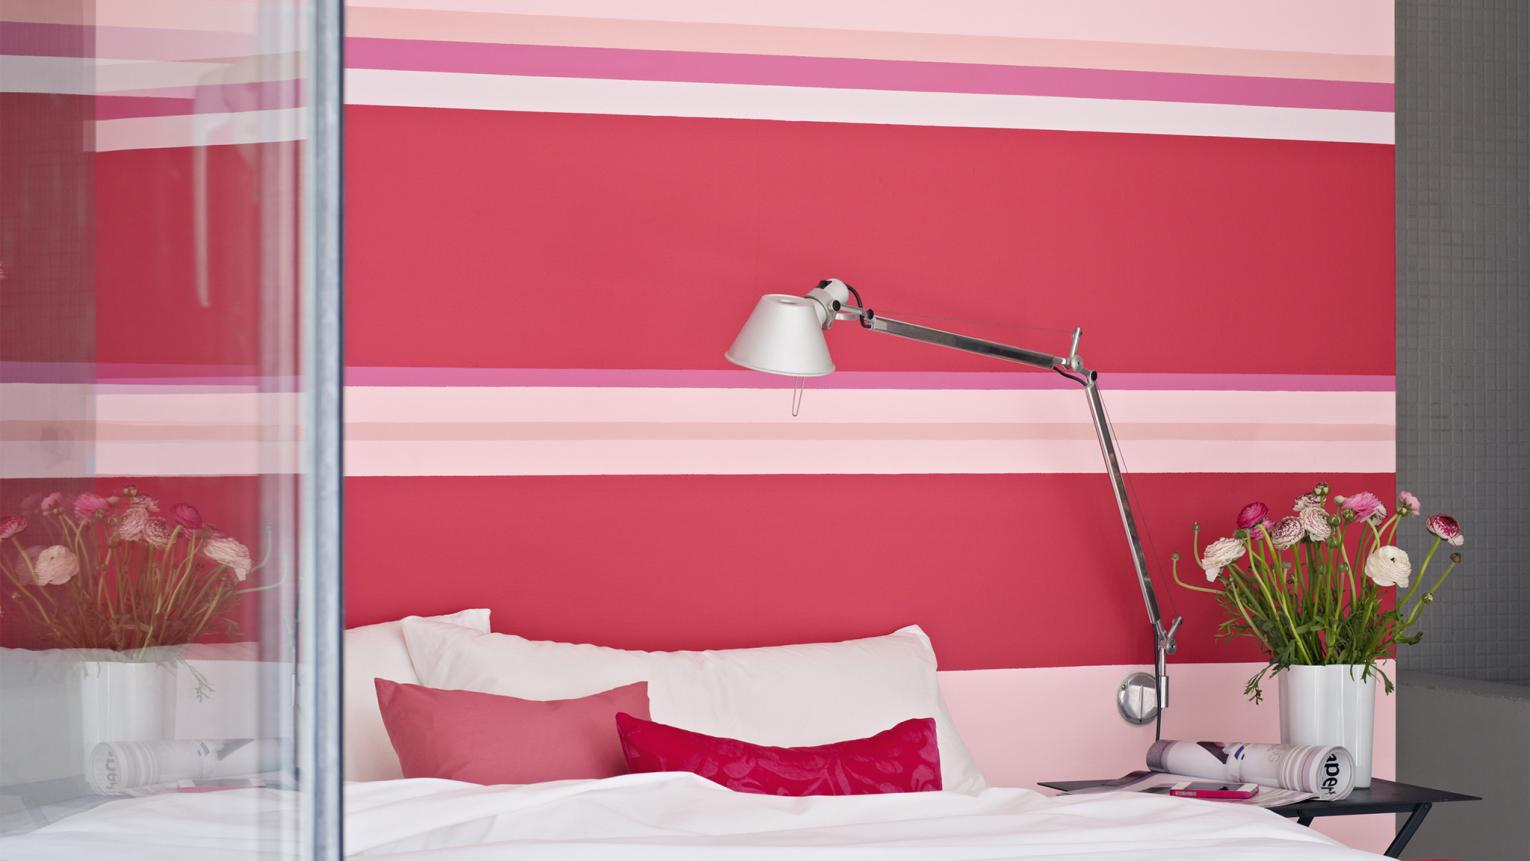 Want to make a fashionable statement in your home? Try decorating with shocking pink.